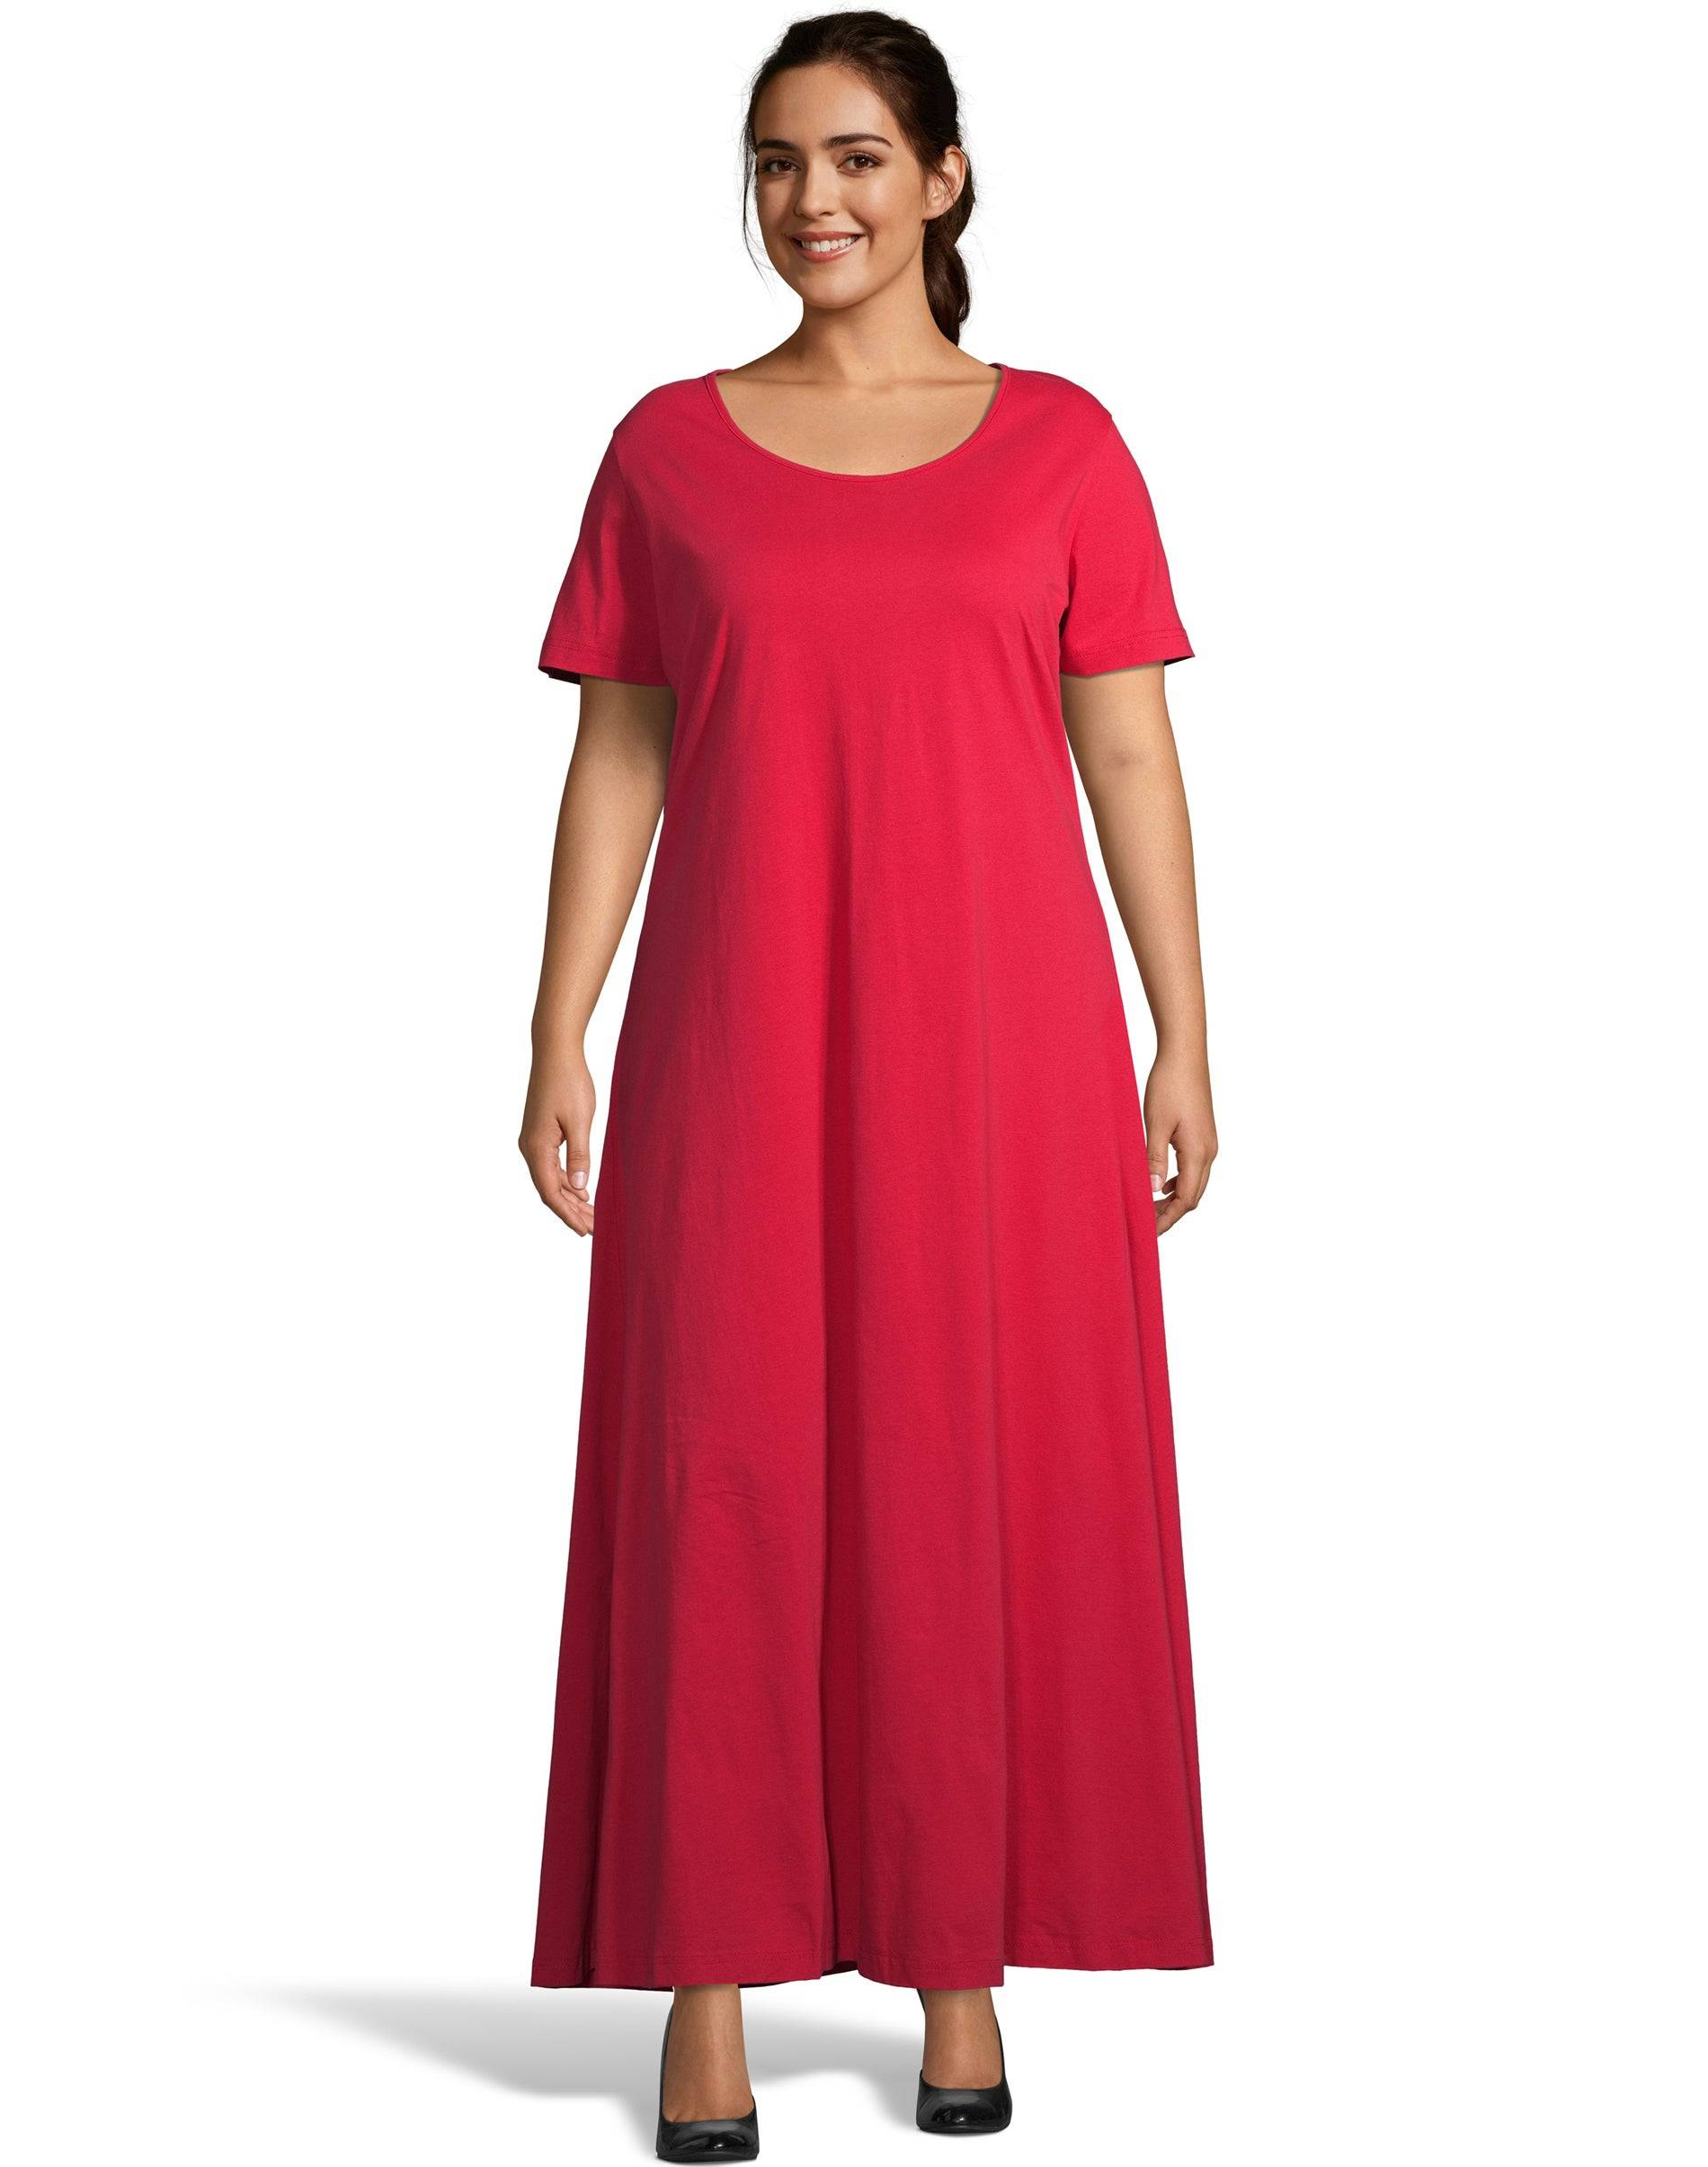 Just My Size Jersey Matchables Maxi Dress Fire Roasted Red 4X Women's